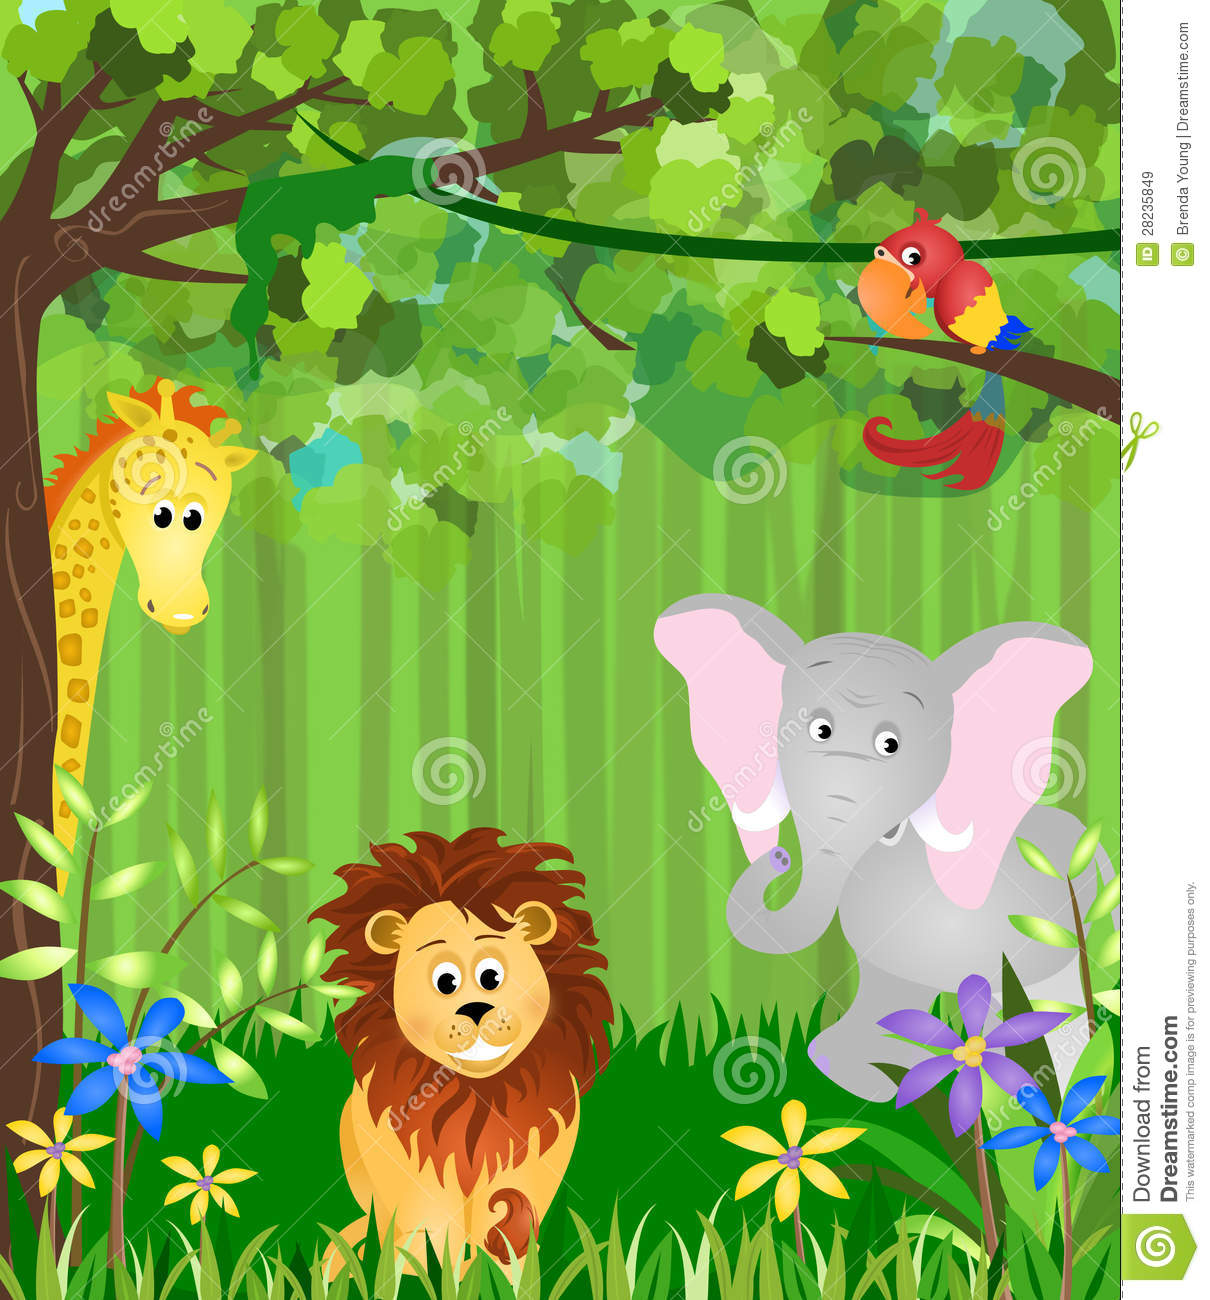 Illustration of a jungle with lion, elephant, bird, giraffe, and ...: https://www.dreamstime.com/royalty-free-stock-images-jungle-animals...